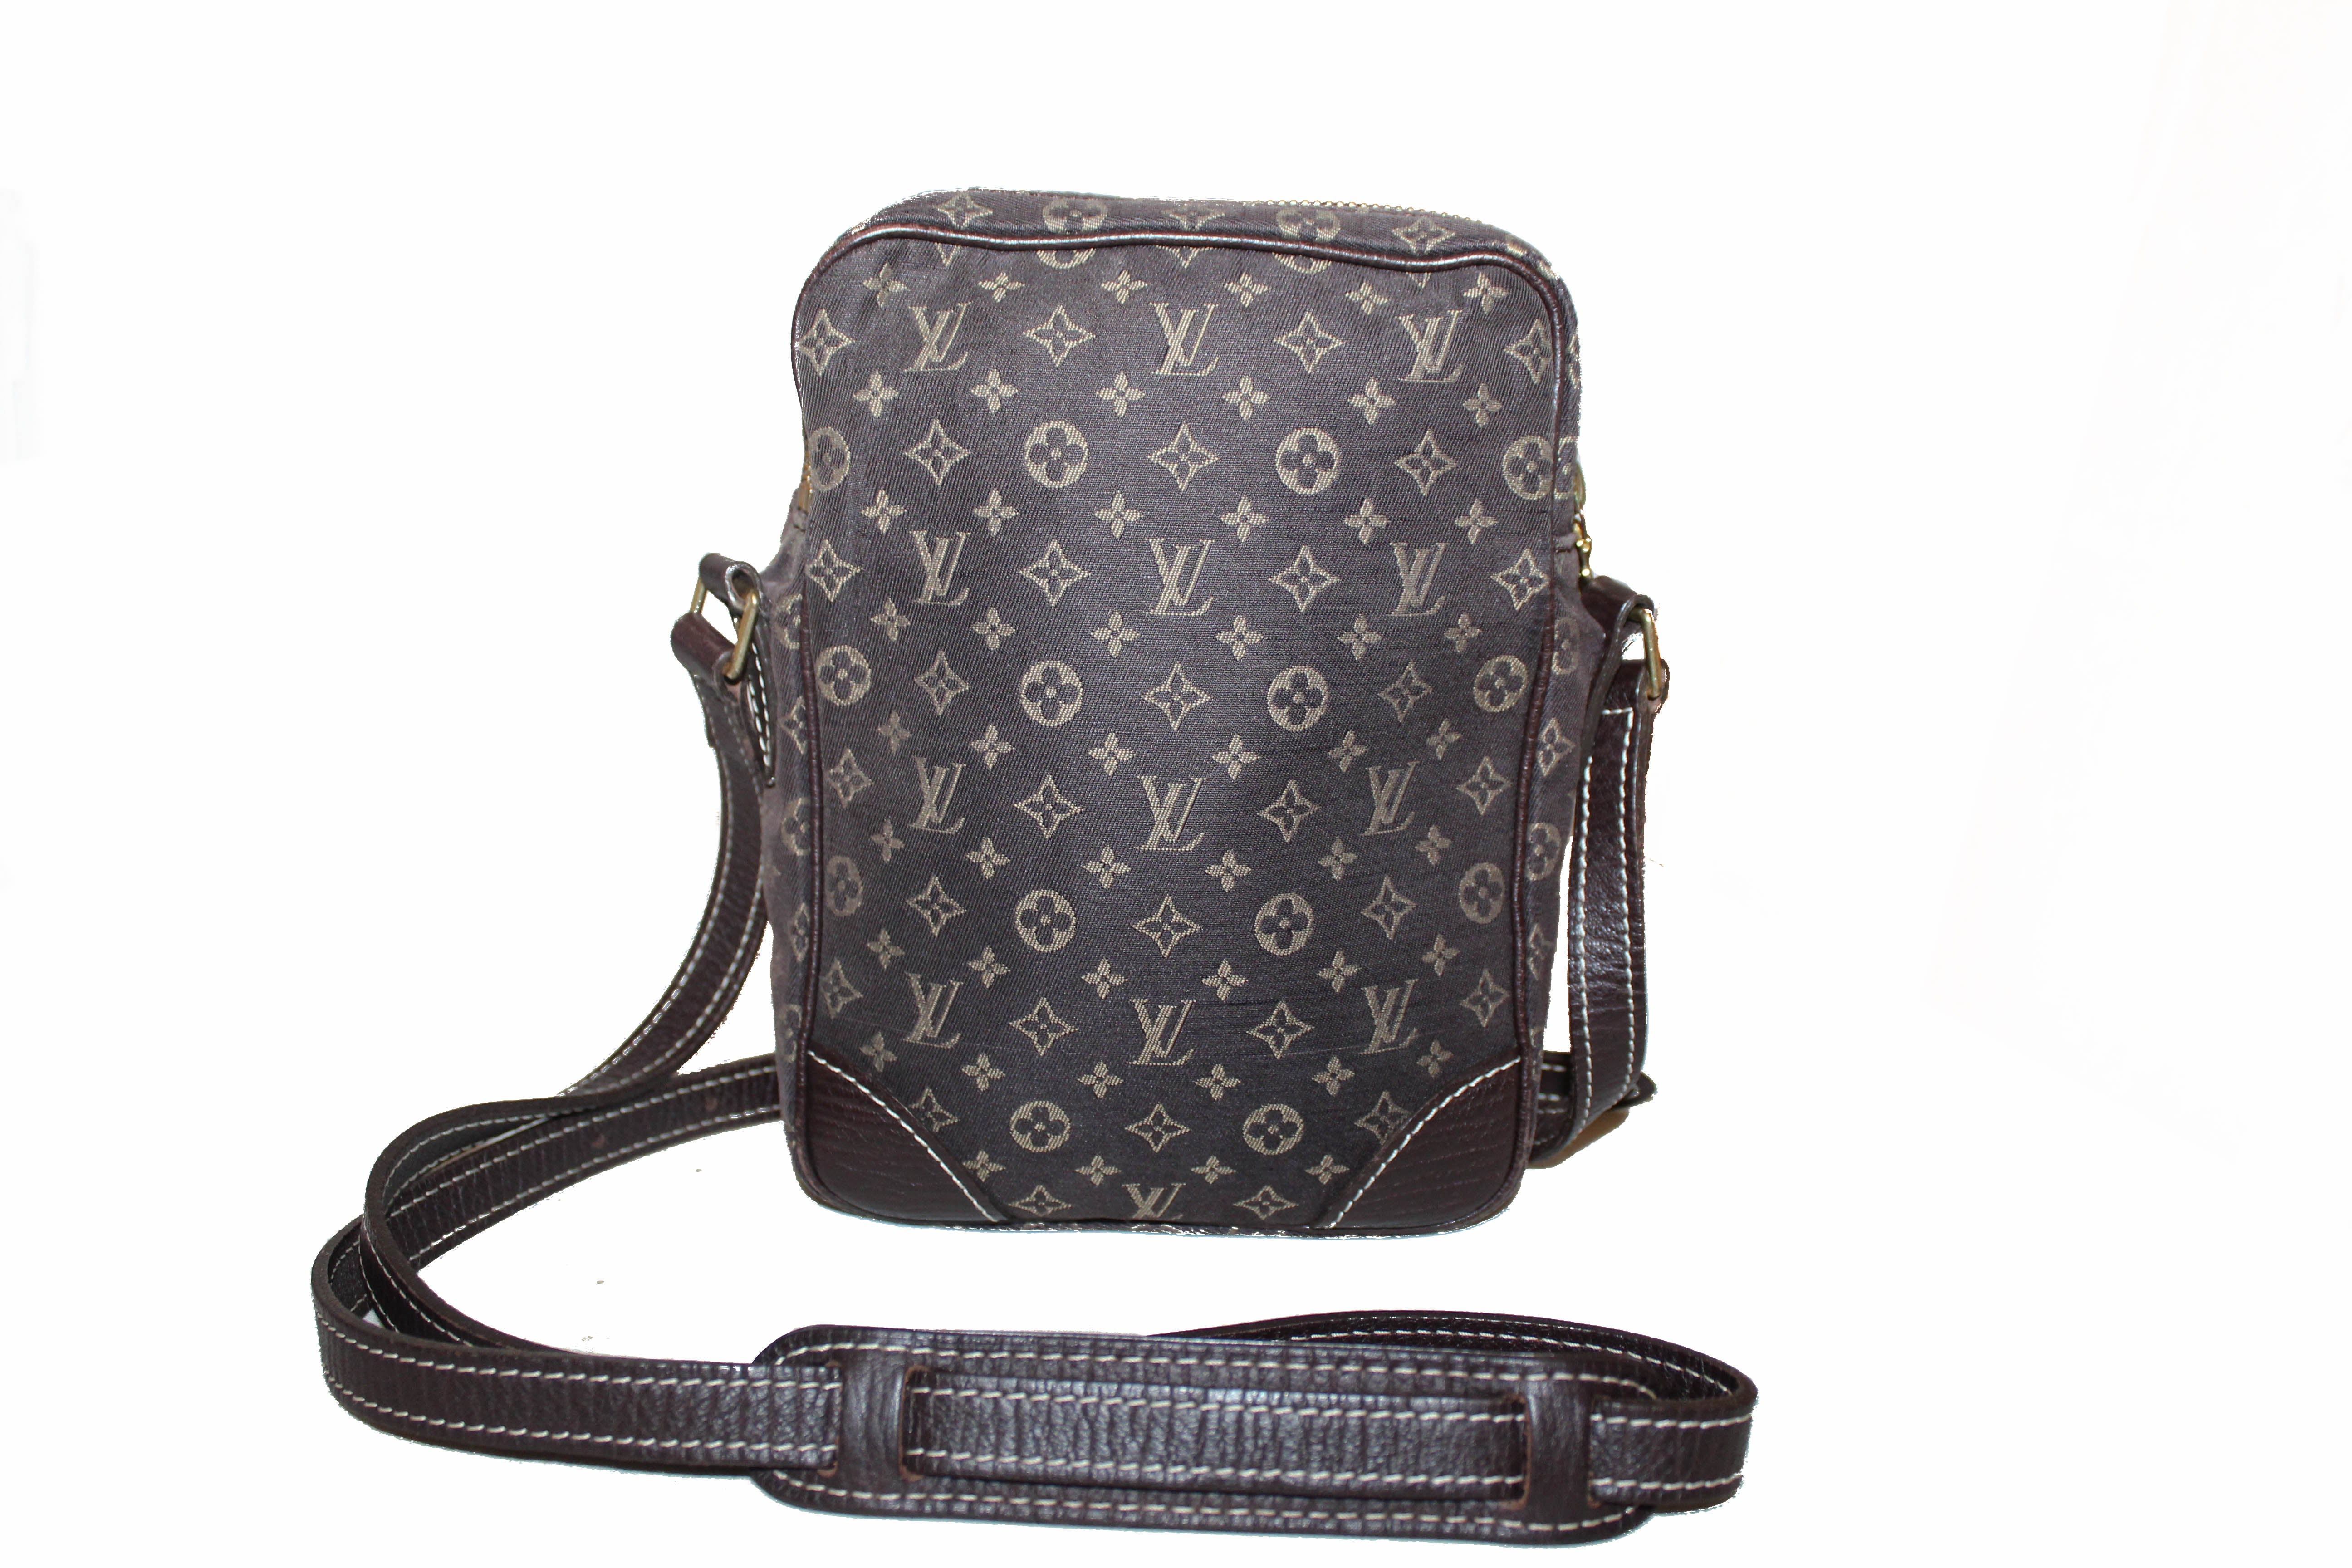 Authentic Louis Vuitton Monogram Mini Lin Brown Danube Small Messenger Bag